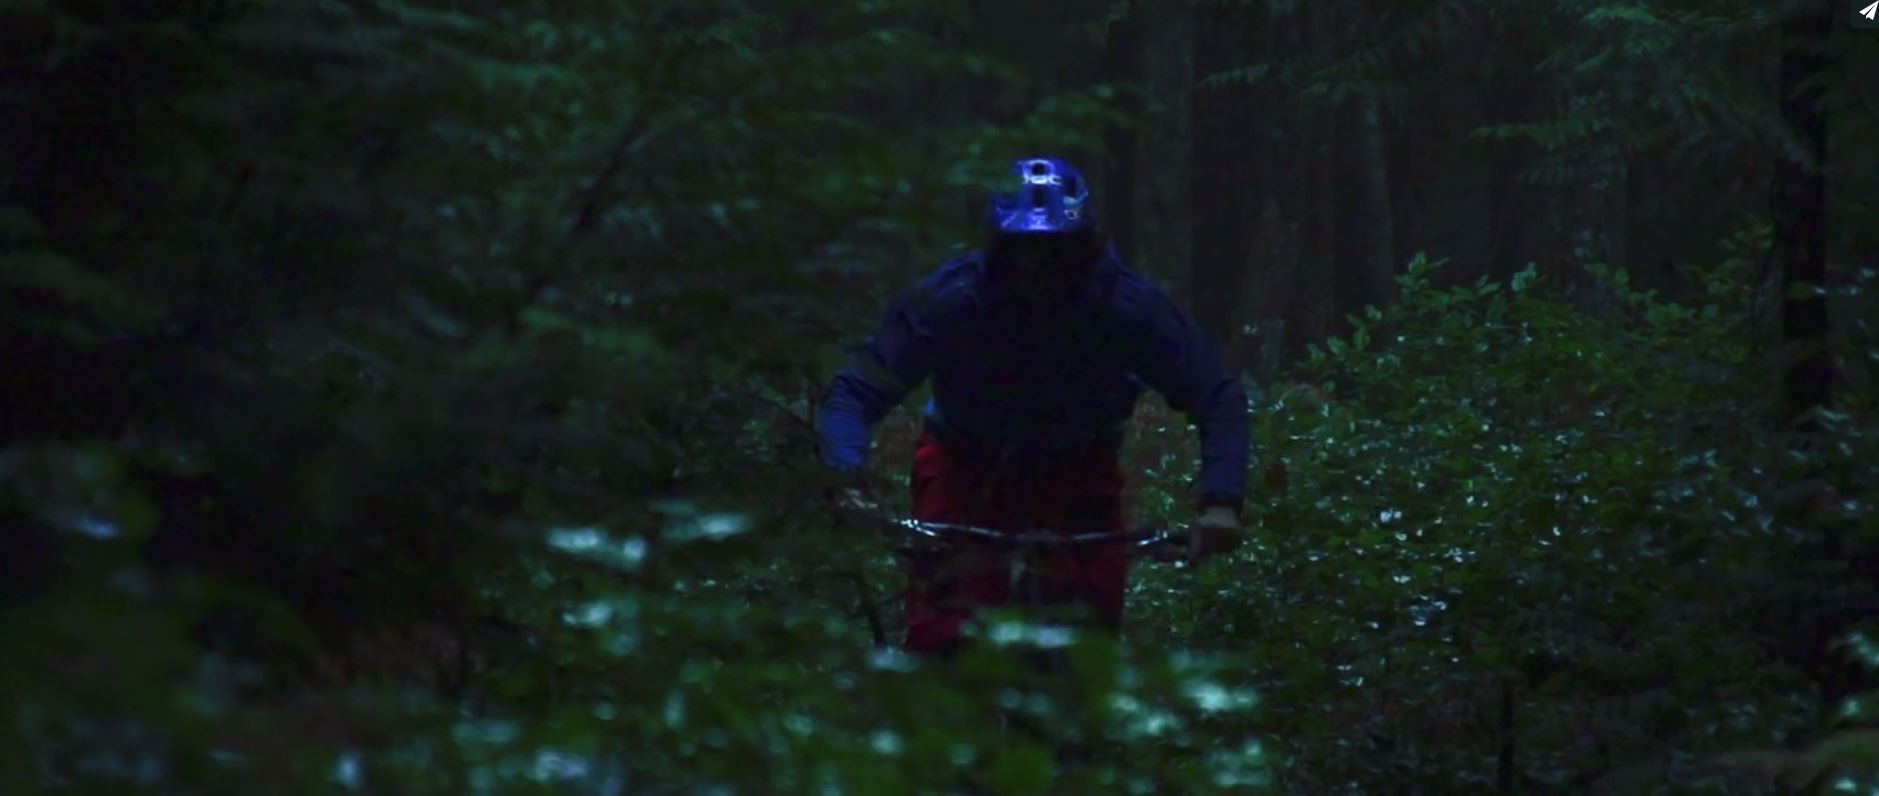 Soaked in Squamish - Kevin Landry by Polygon Bikes